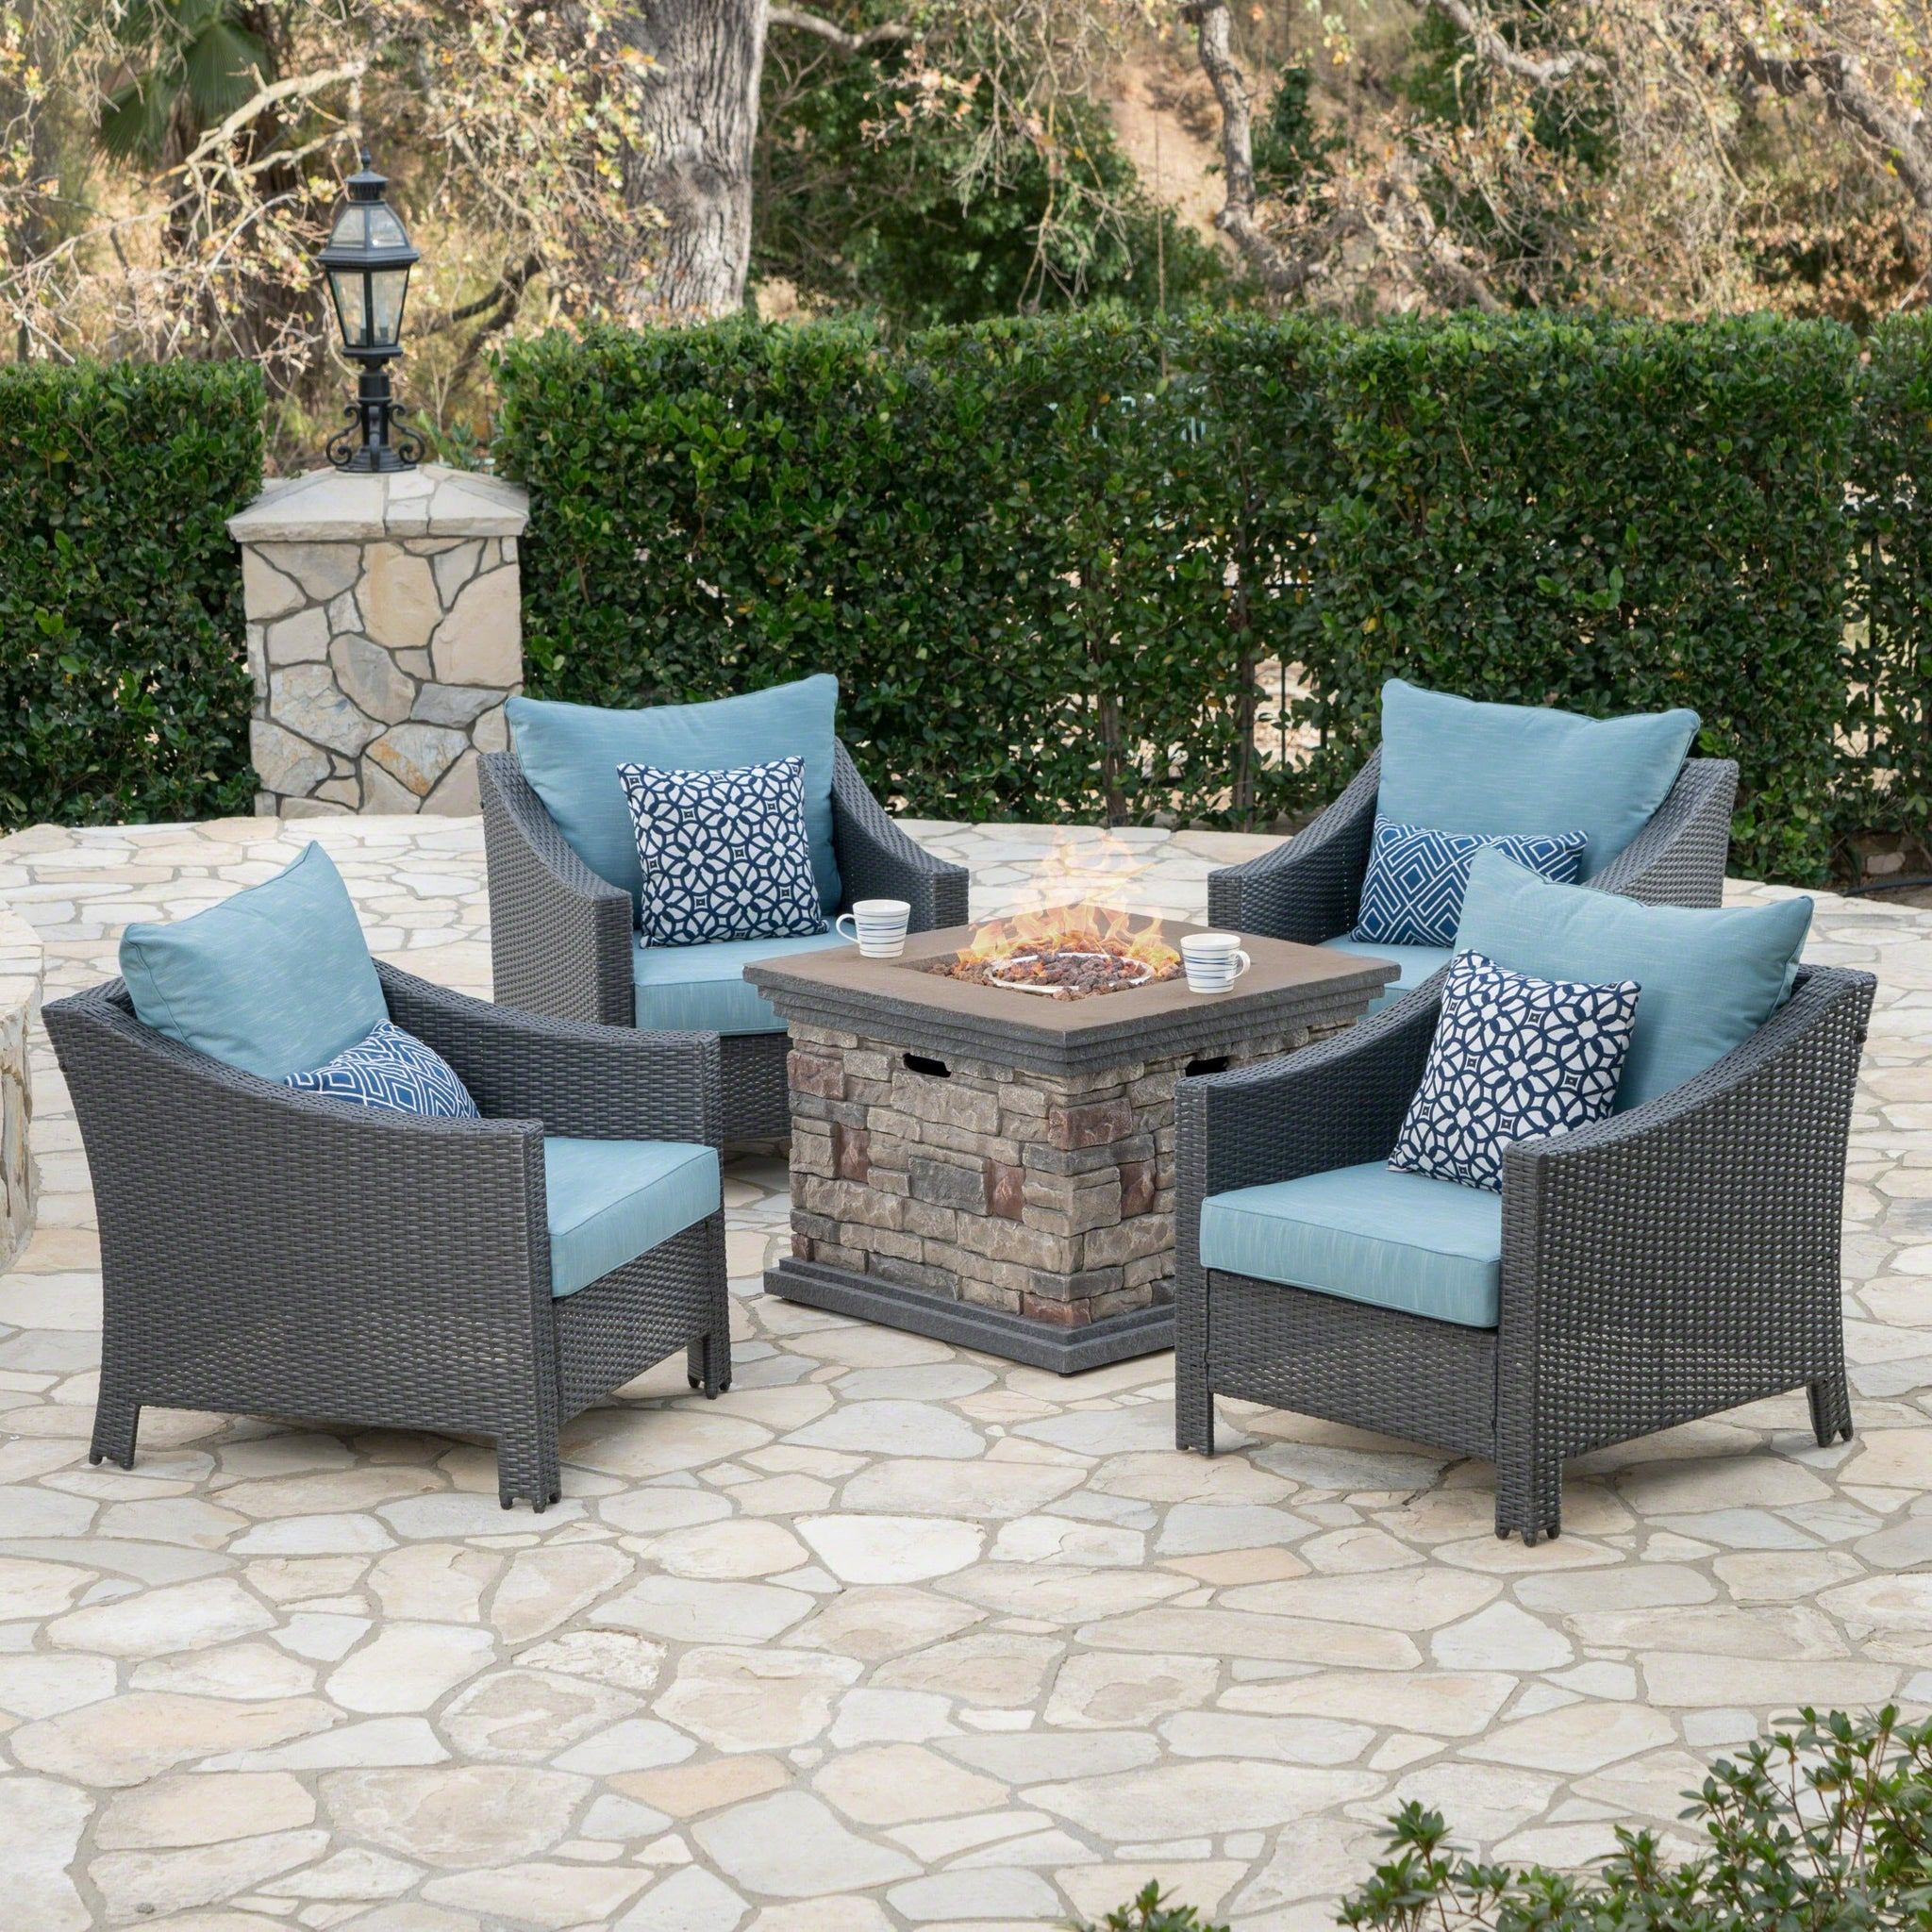 Anson Outdoor 5 Piece Wicker Club Chairs With Water Resistant Cushions And Stone Finished Fire Pit